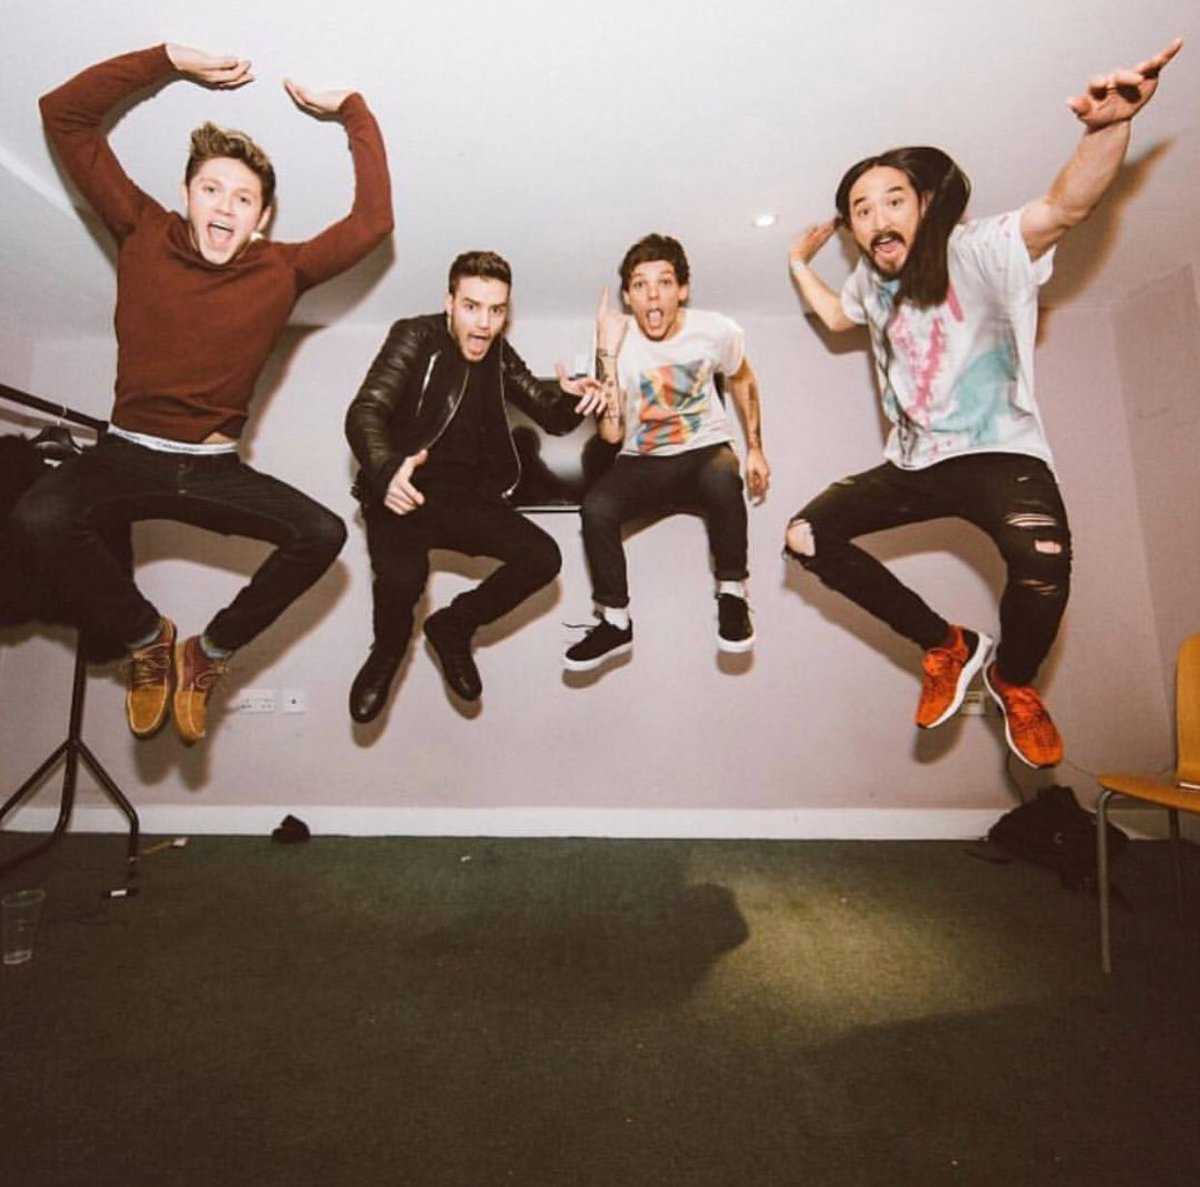 Who would you want to #AokiJump with?